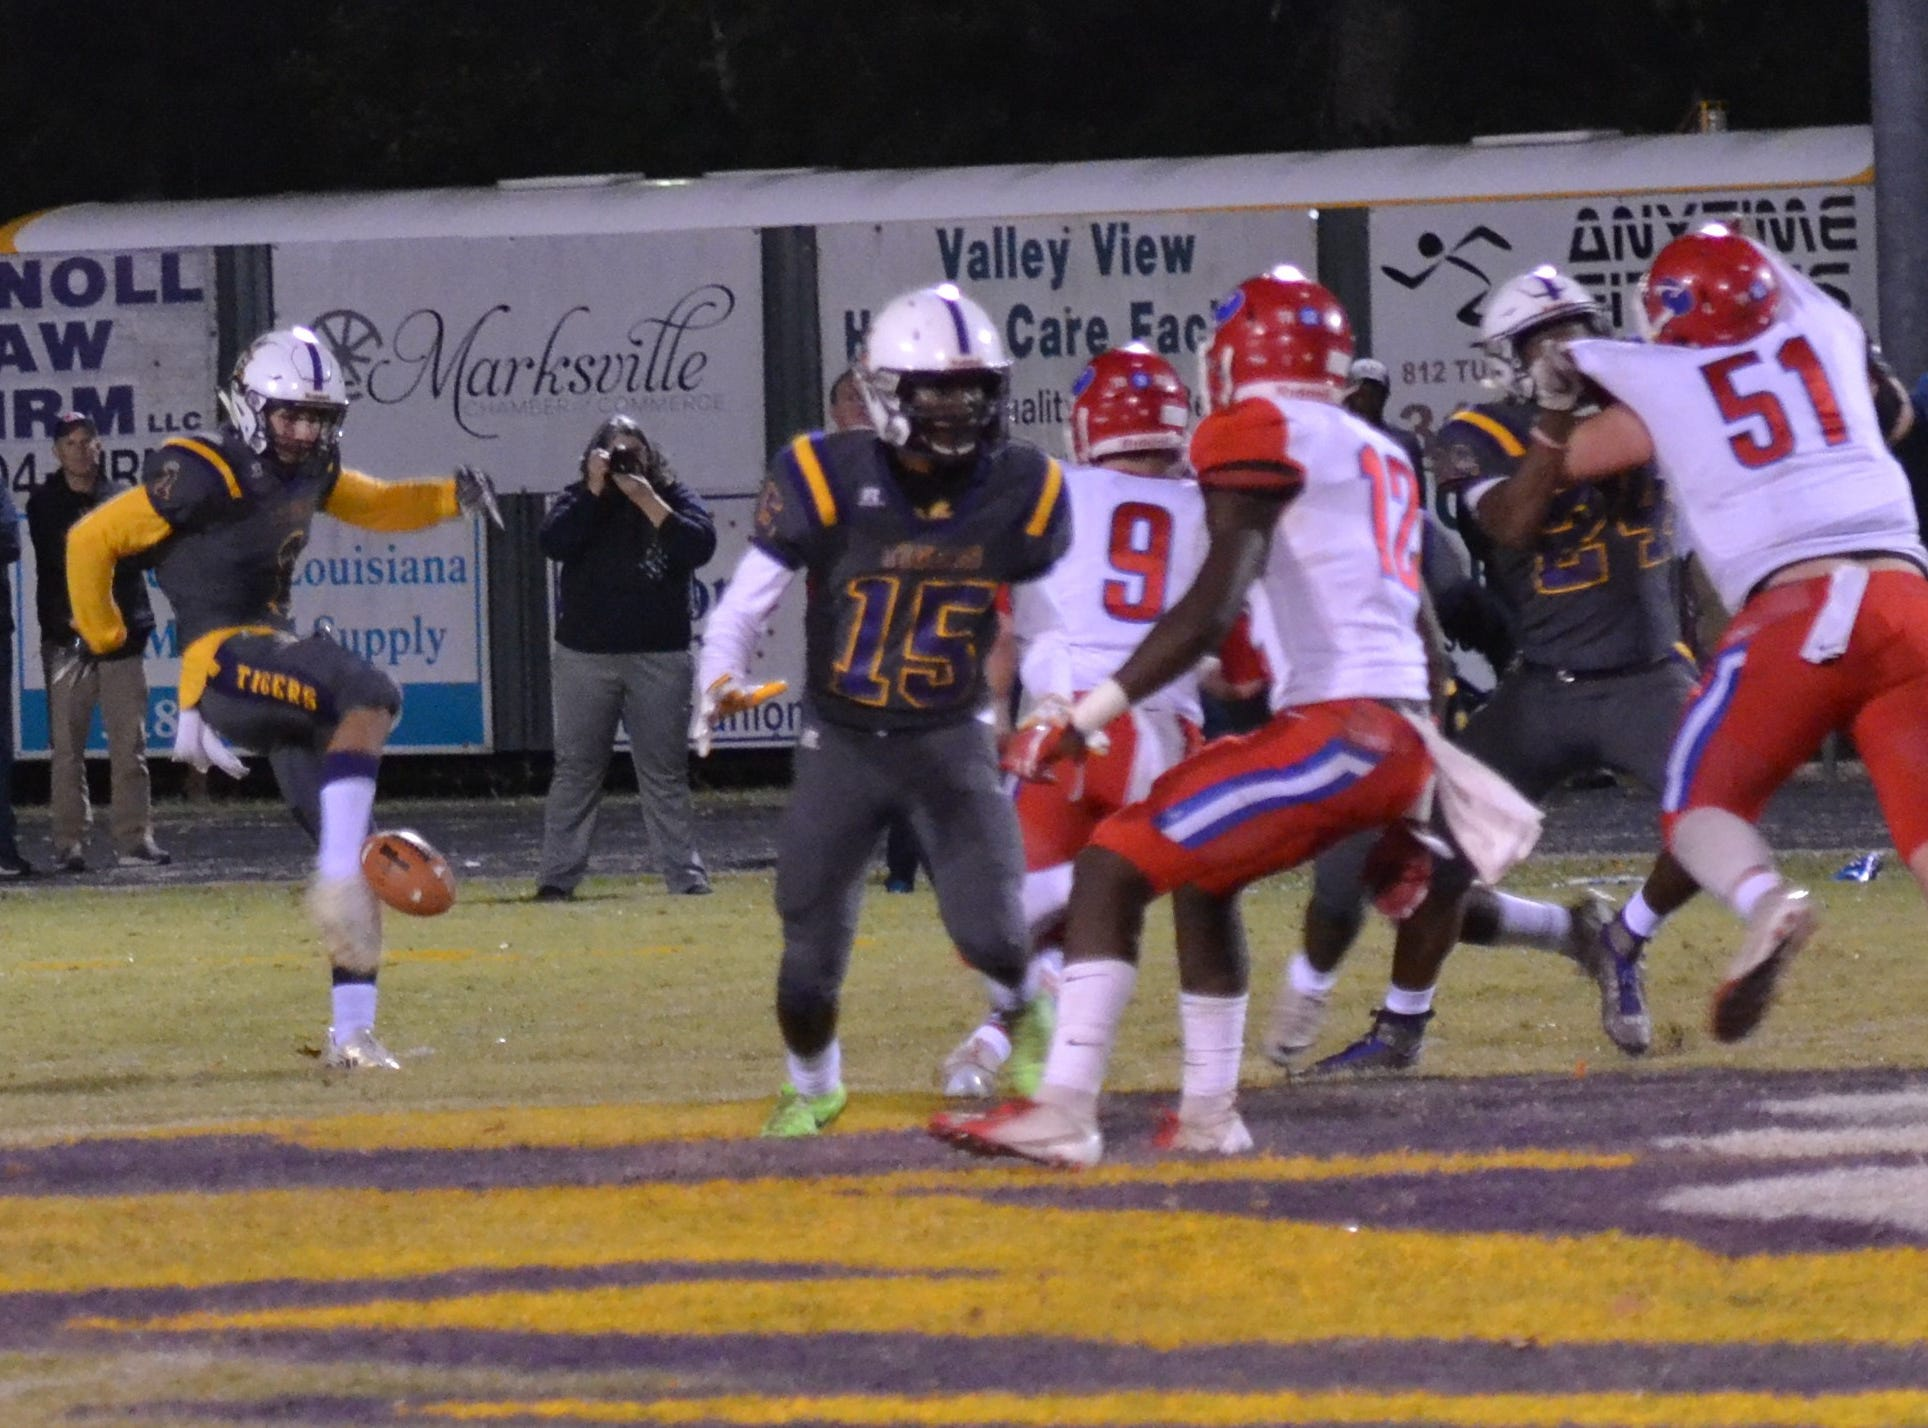 Braydon Flores (1) punts for the Tigers. Marksville and Caldwell met in the regular season finale Friday night with Caldwell edging Marksville 13-8.